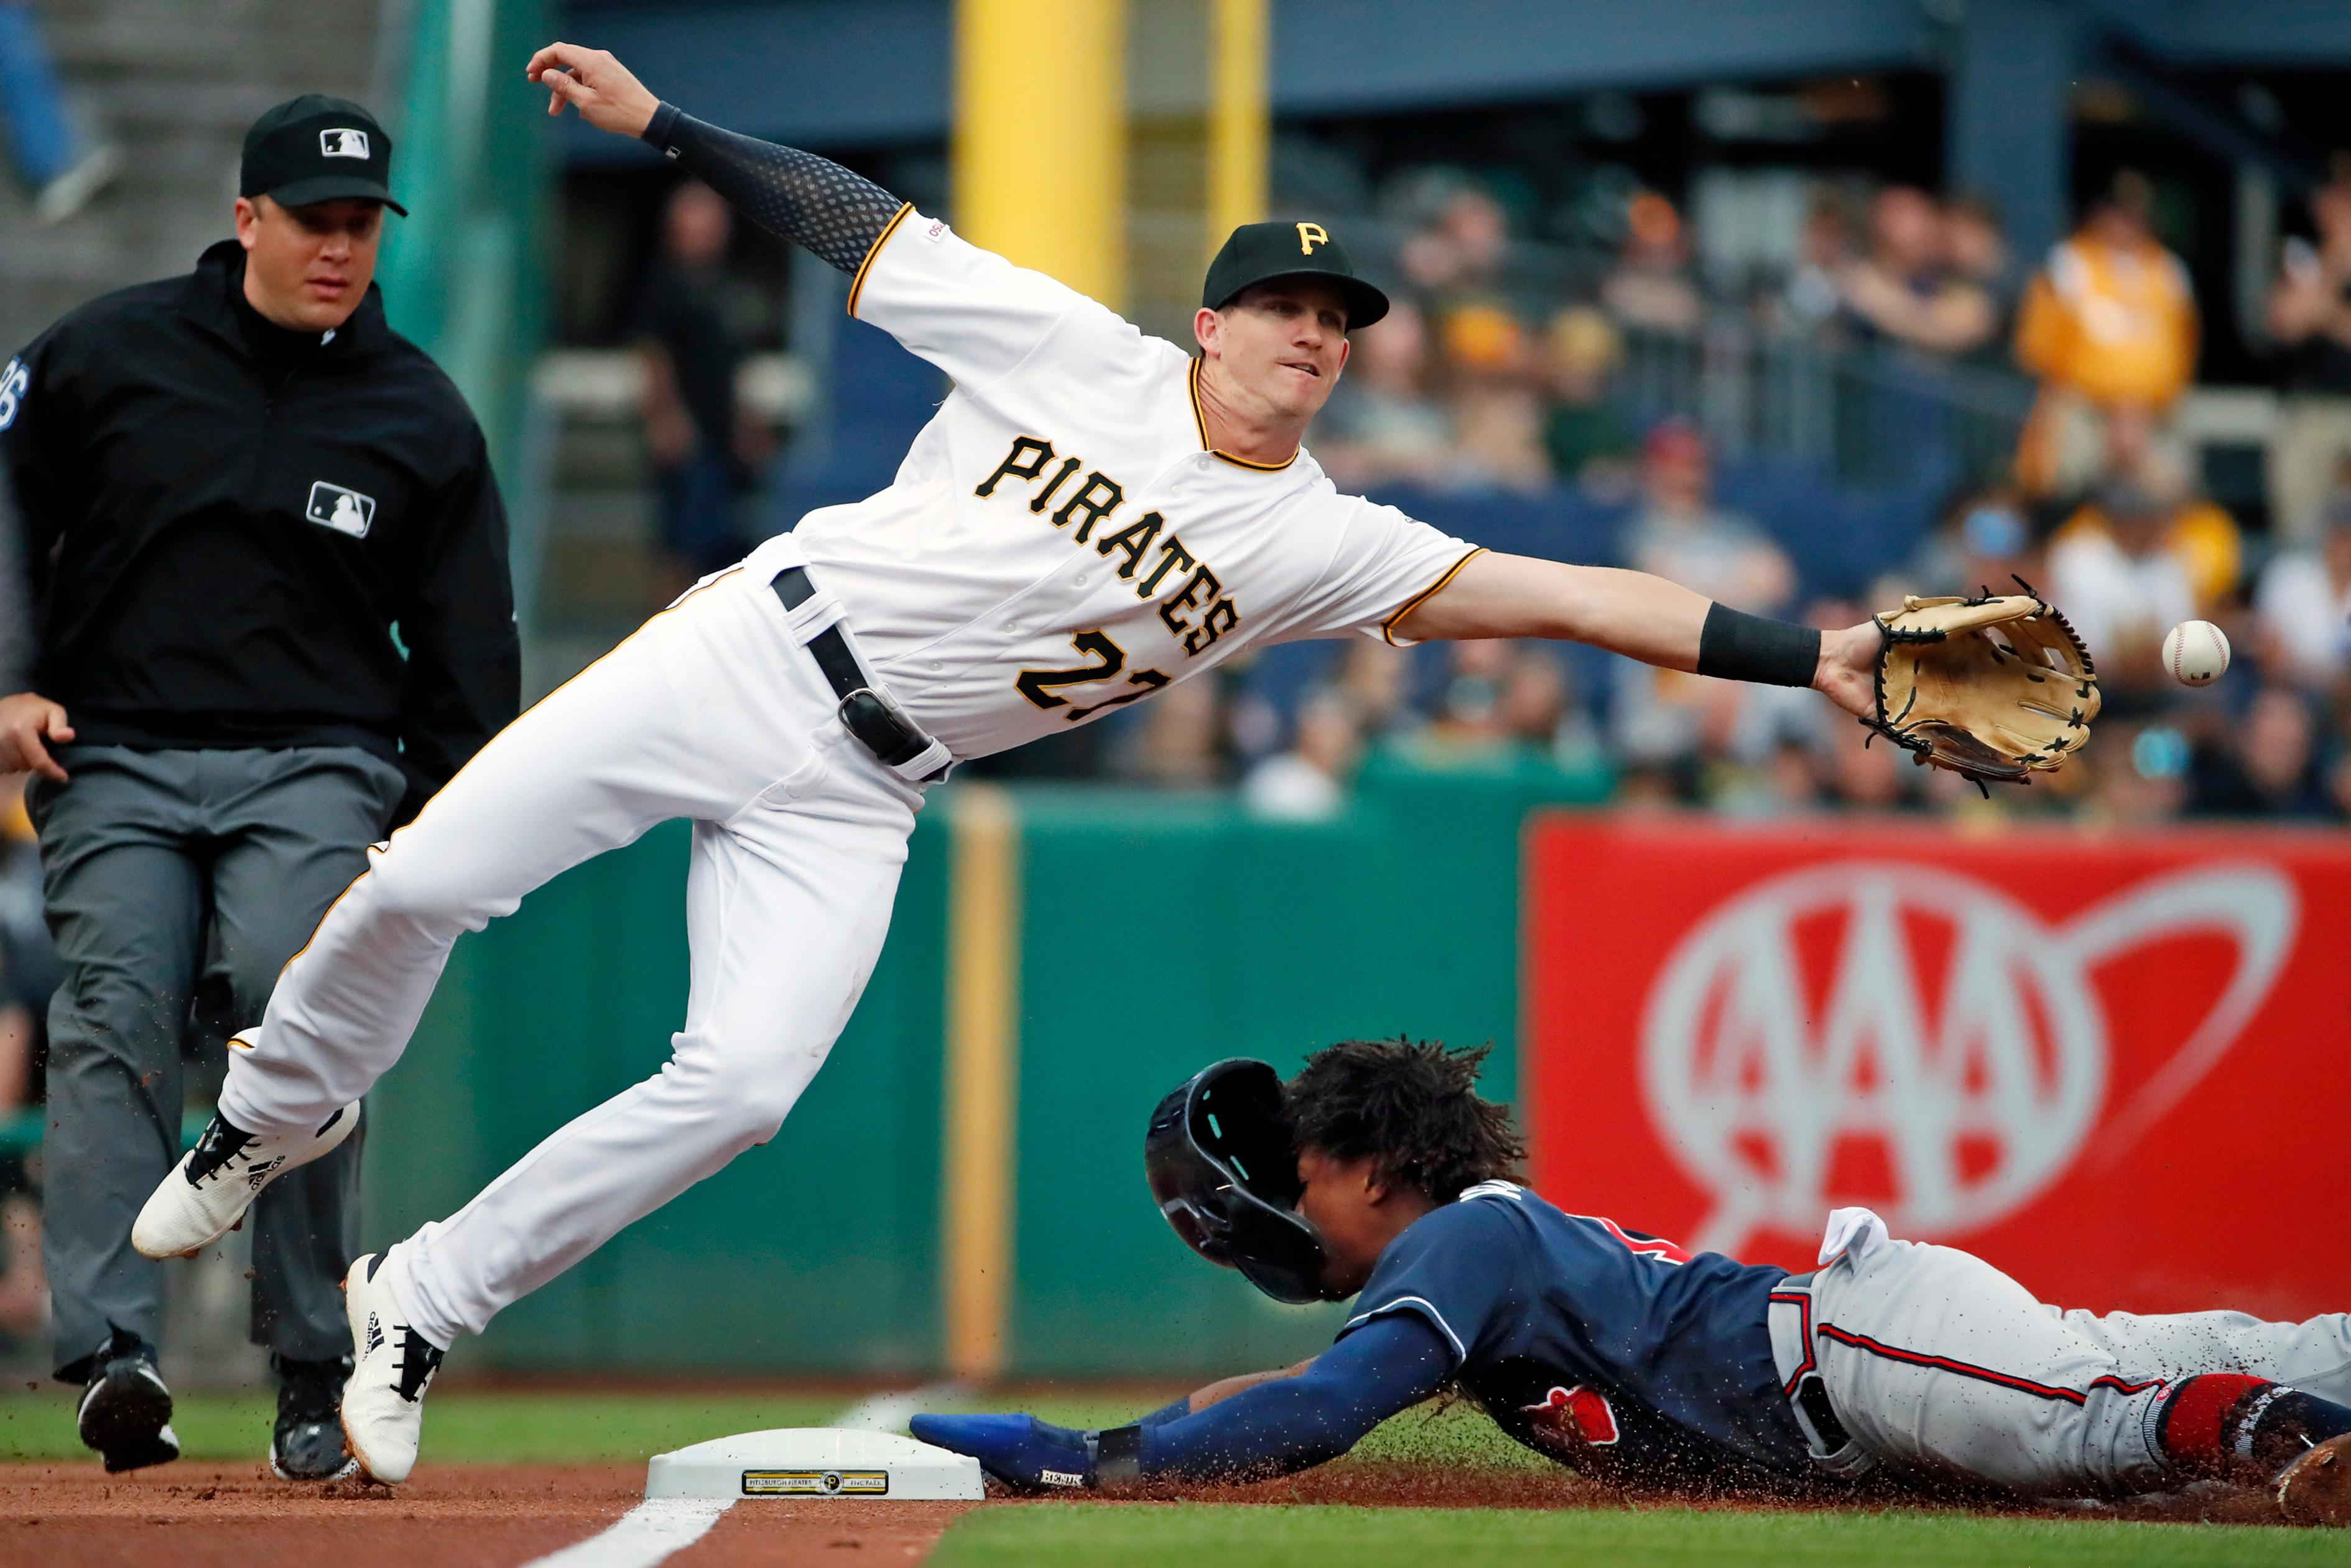 Pittsburgh Pirates third baseman Kevin Newman (27) reaches for but can't reach an errant throw by catcher Elias Diaz as Atlanta Braves' Ronald Acuna Jr. steals third during the first inning of a baseball game in Pittsburgh, Tuesday, June 4, 2019. Acuna scored on the throwing error. (AP Photo/Gene J. Puskar)